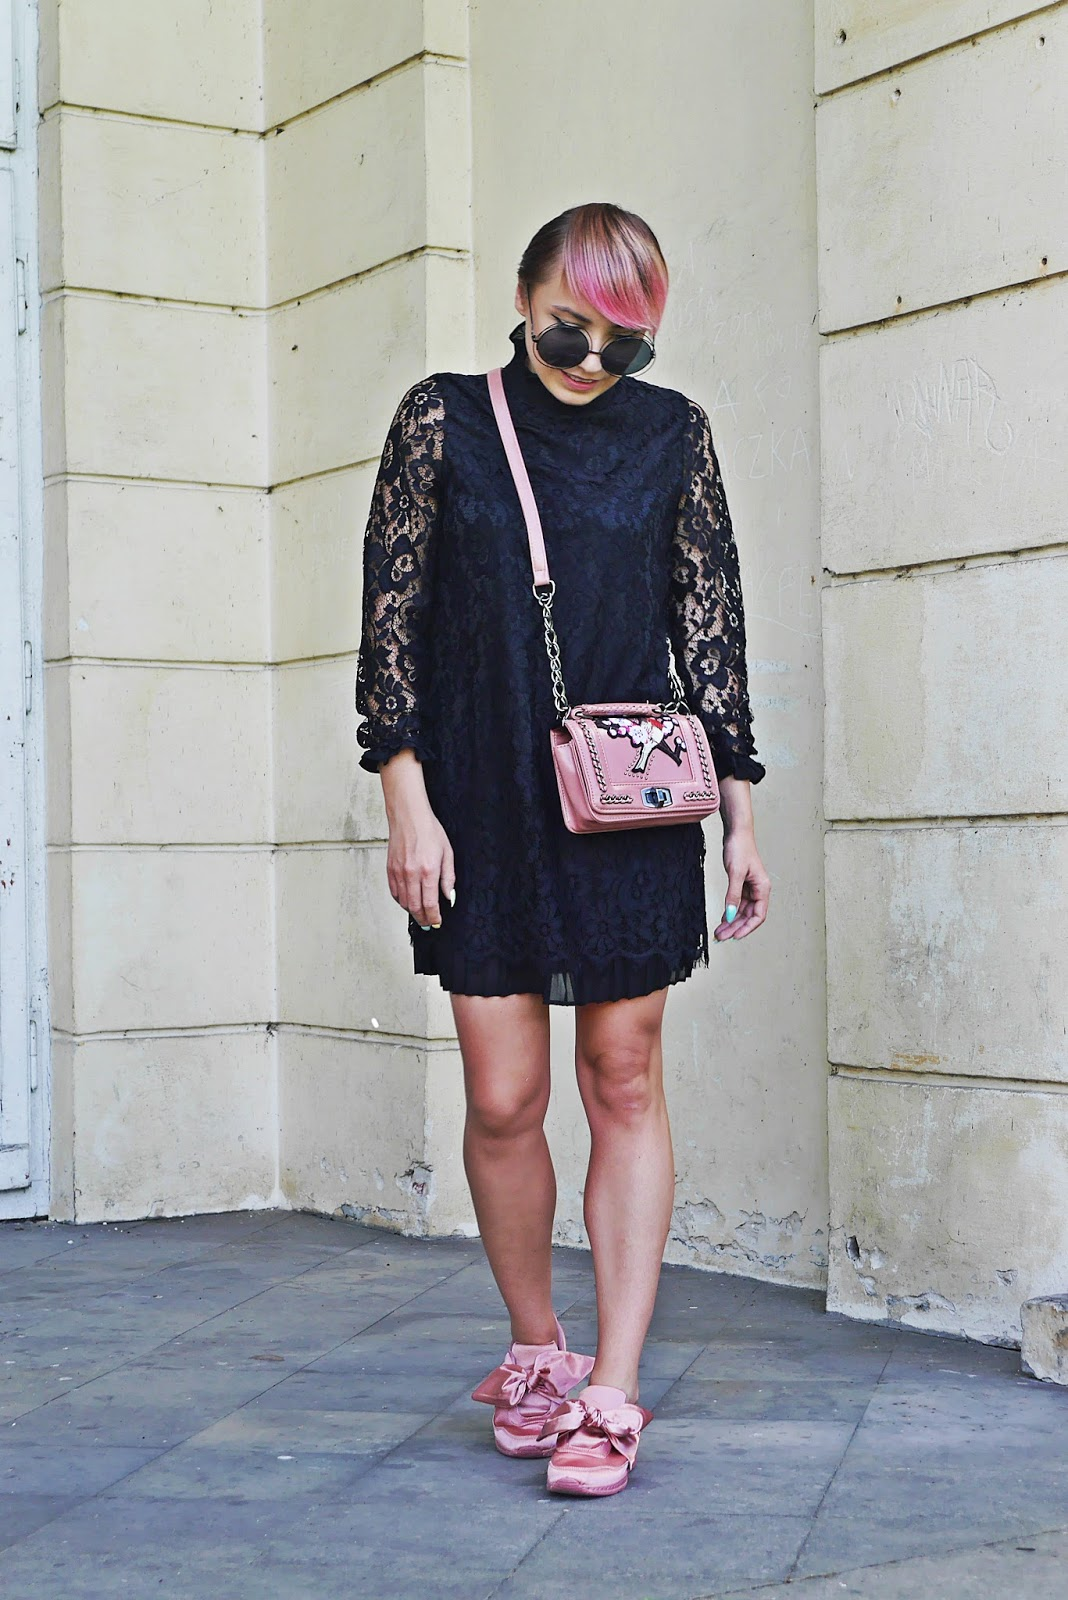 renee_shoes_pink_lace_dress_embroidery_bag_karyn_blog_modowy_150817c